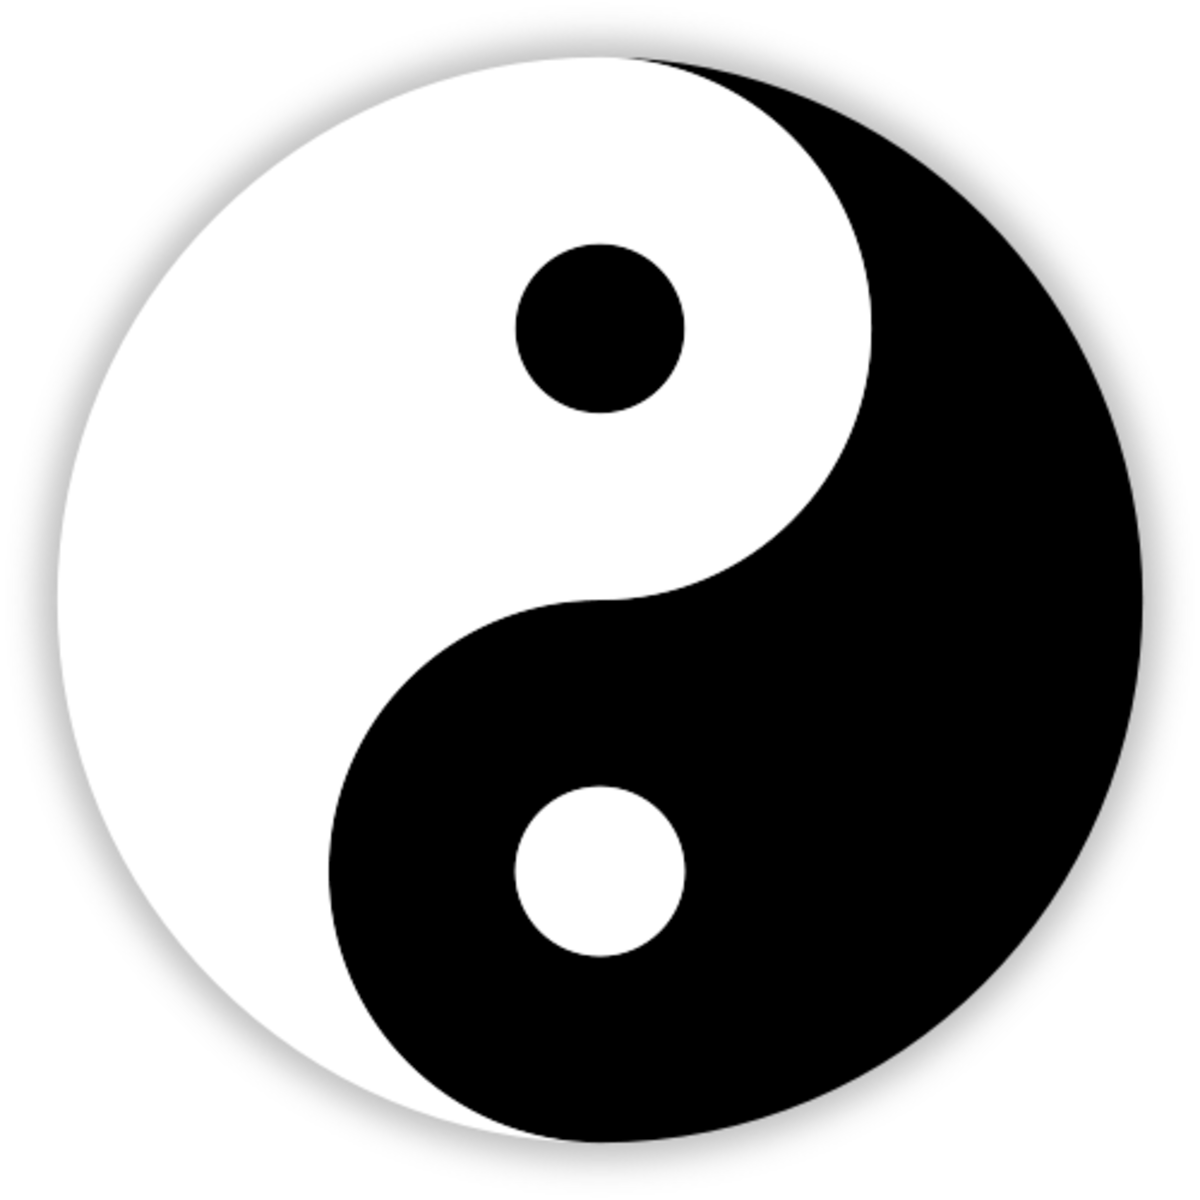 The 'Yin Yang' (which translates 'dark light') symbol that is used in Taoism. Taoism basically believes that opposites cannot exist without each other.